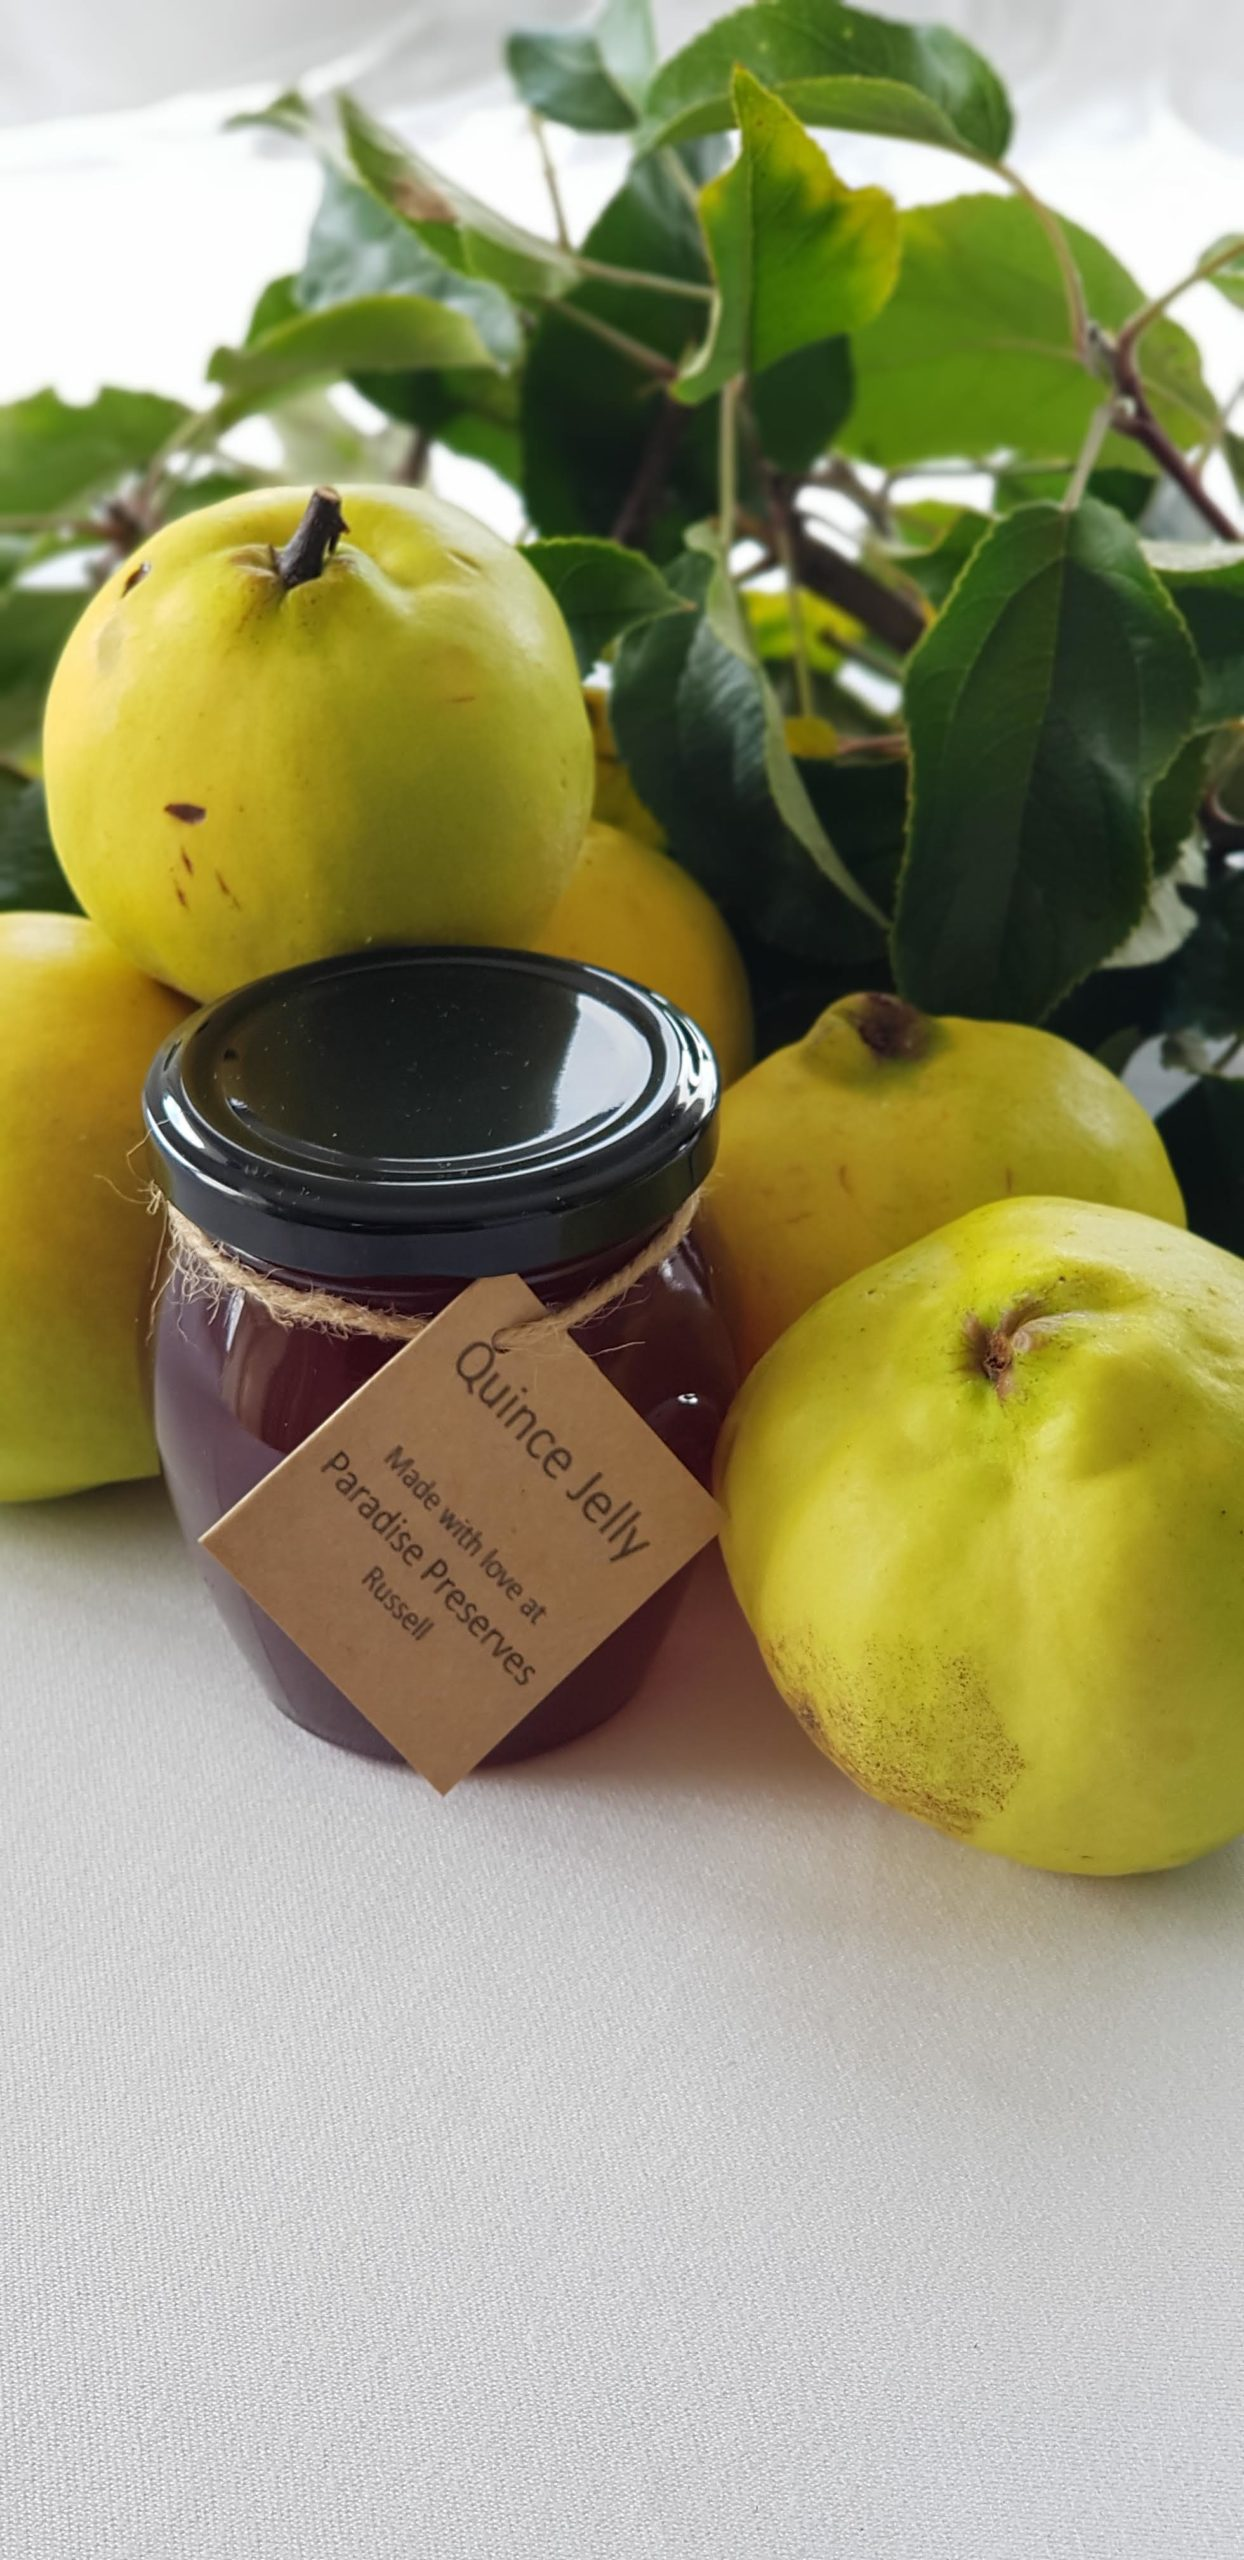 2. Quince jelly